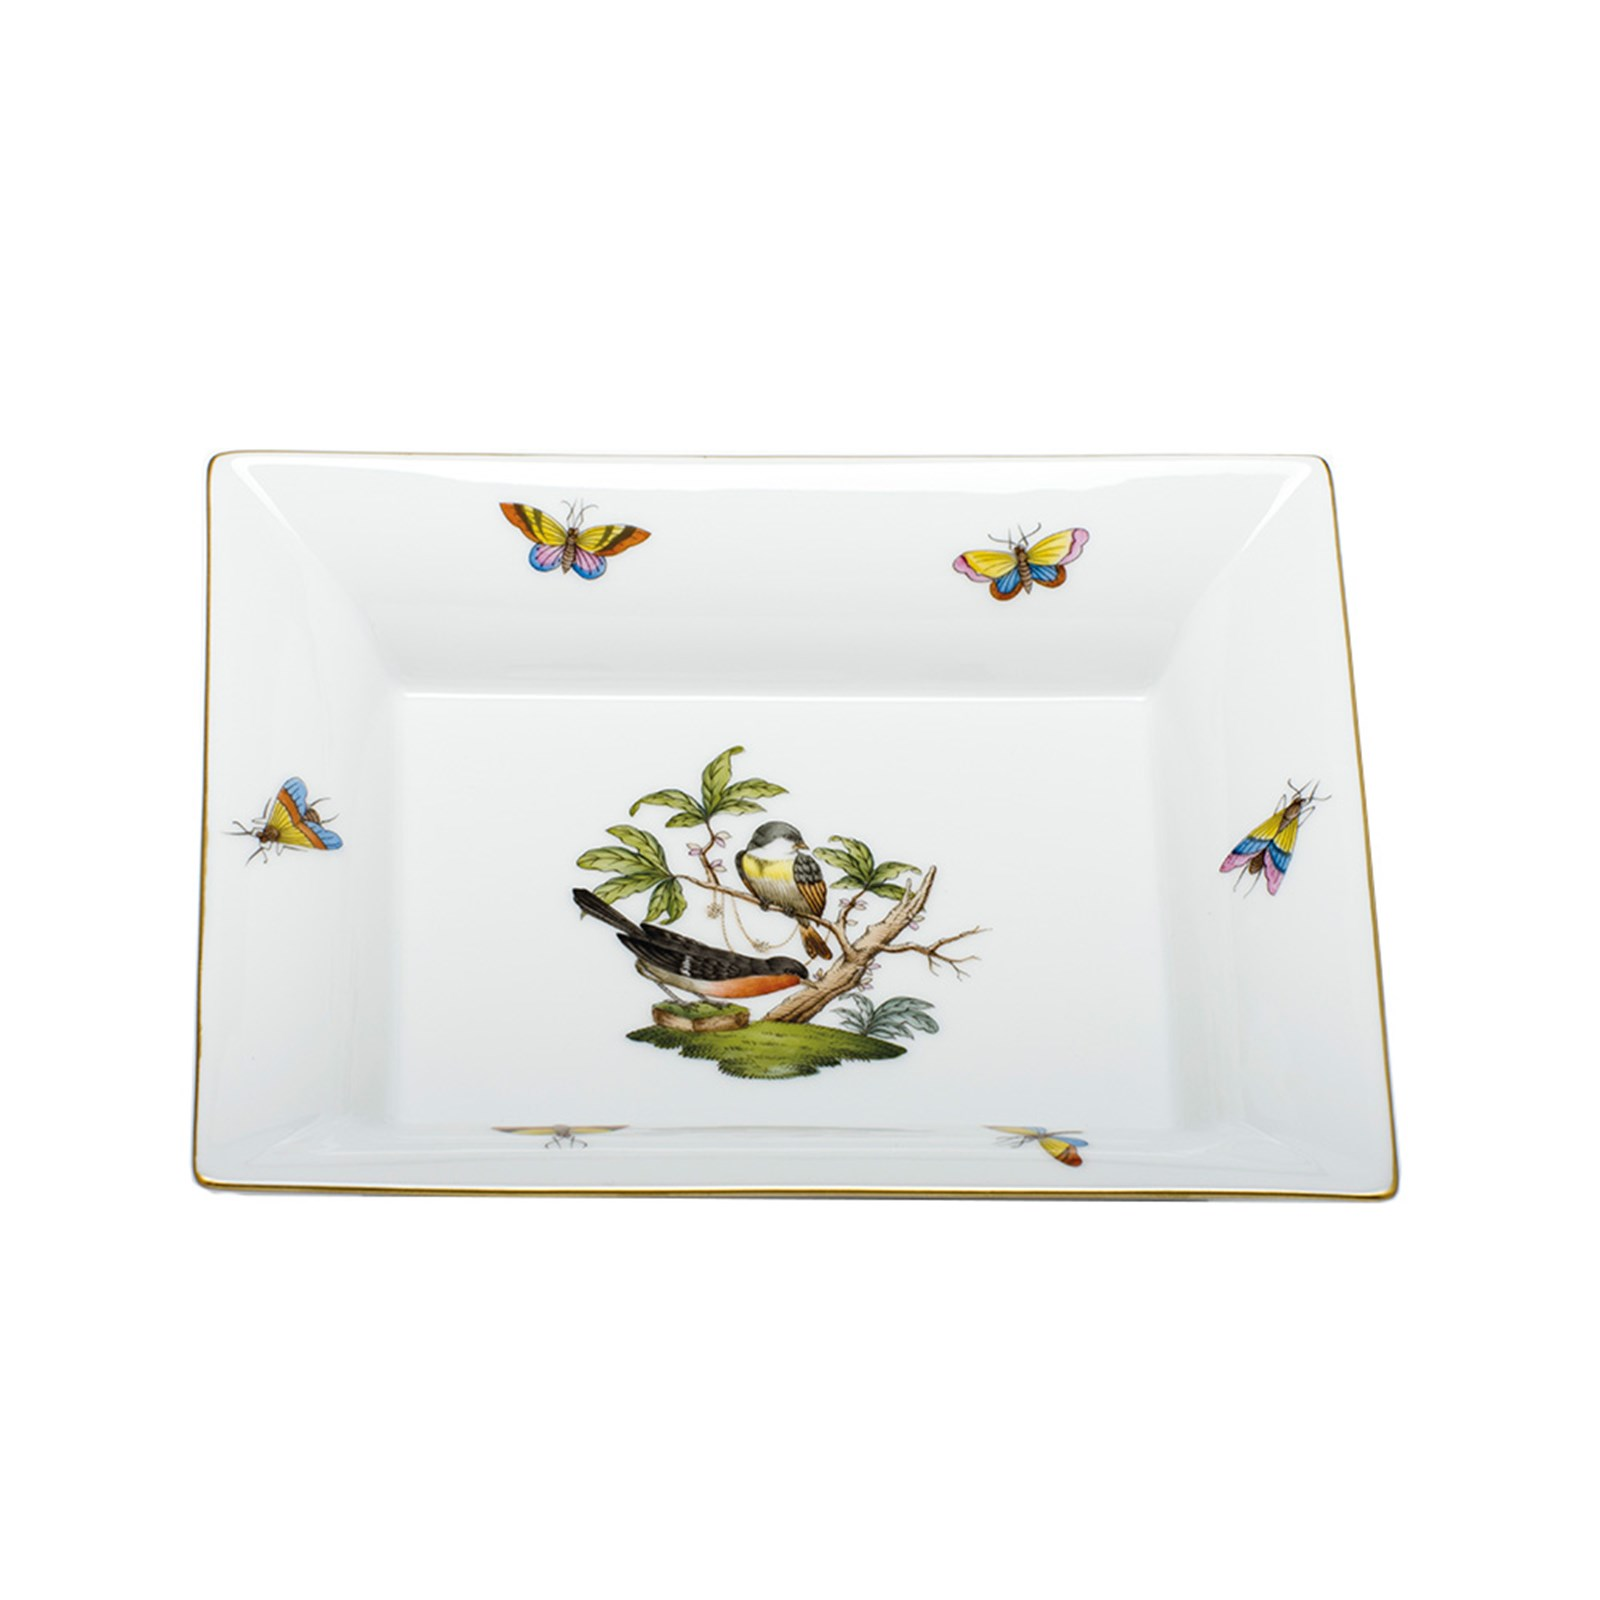 Herend Jewelry Trays More Herend Herend China China Tabletop